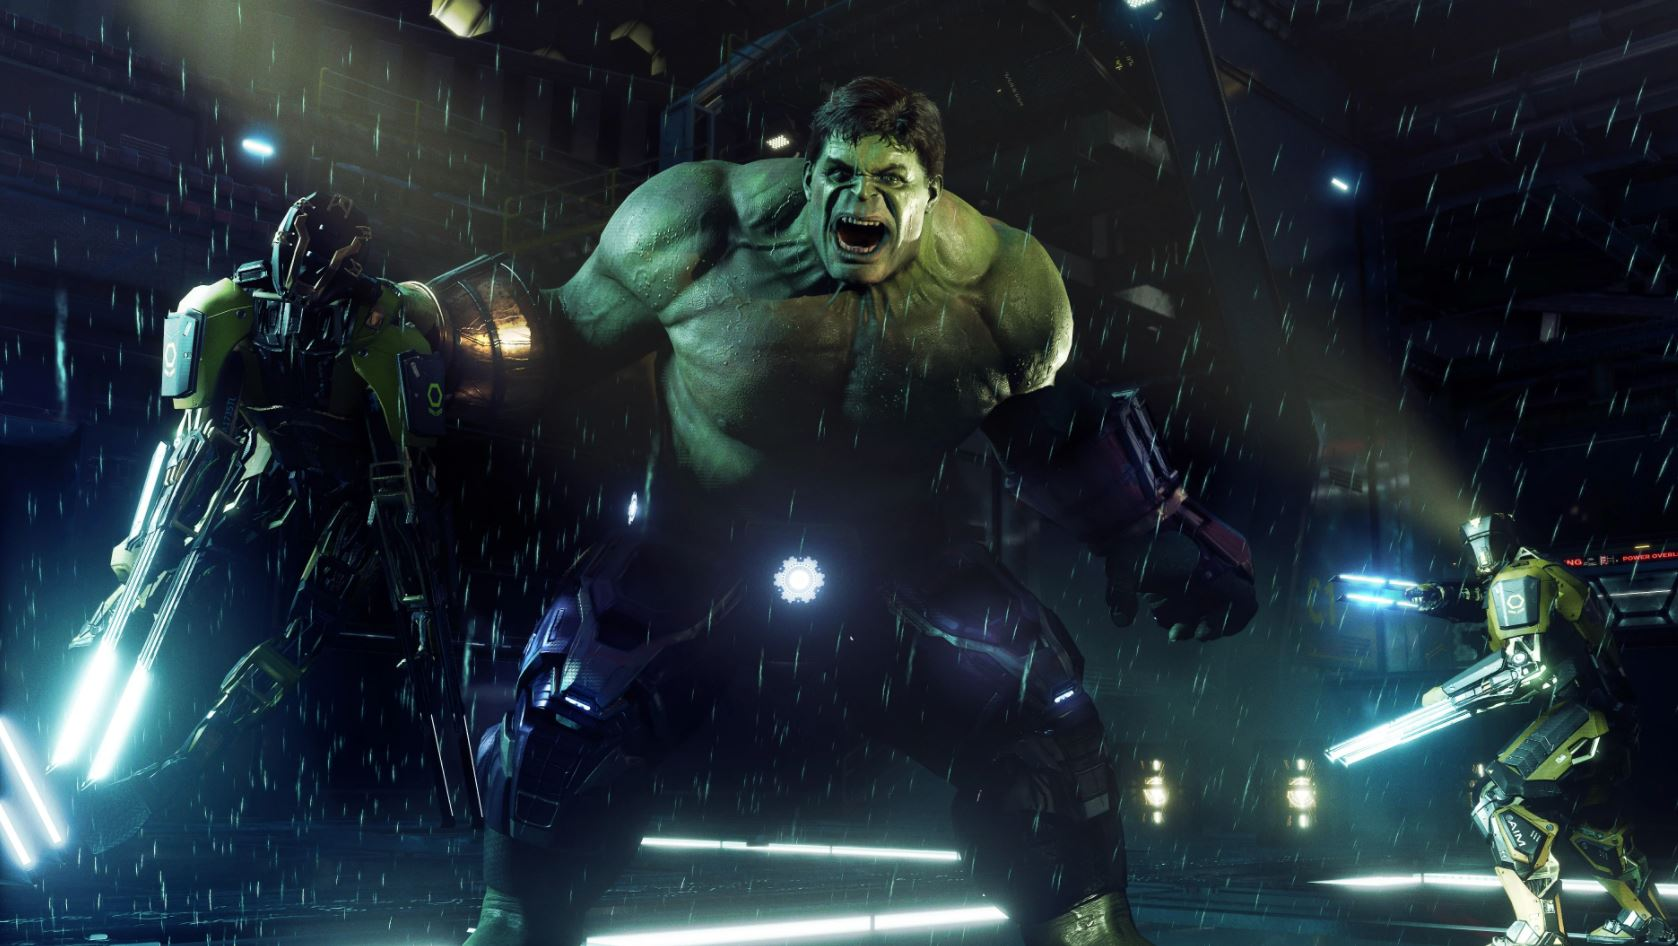 marvels-avengers-latest-trailer-shows-you-how-the-ps5-version-is-improved